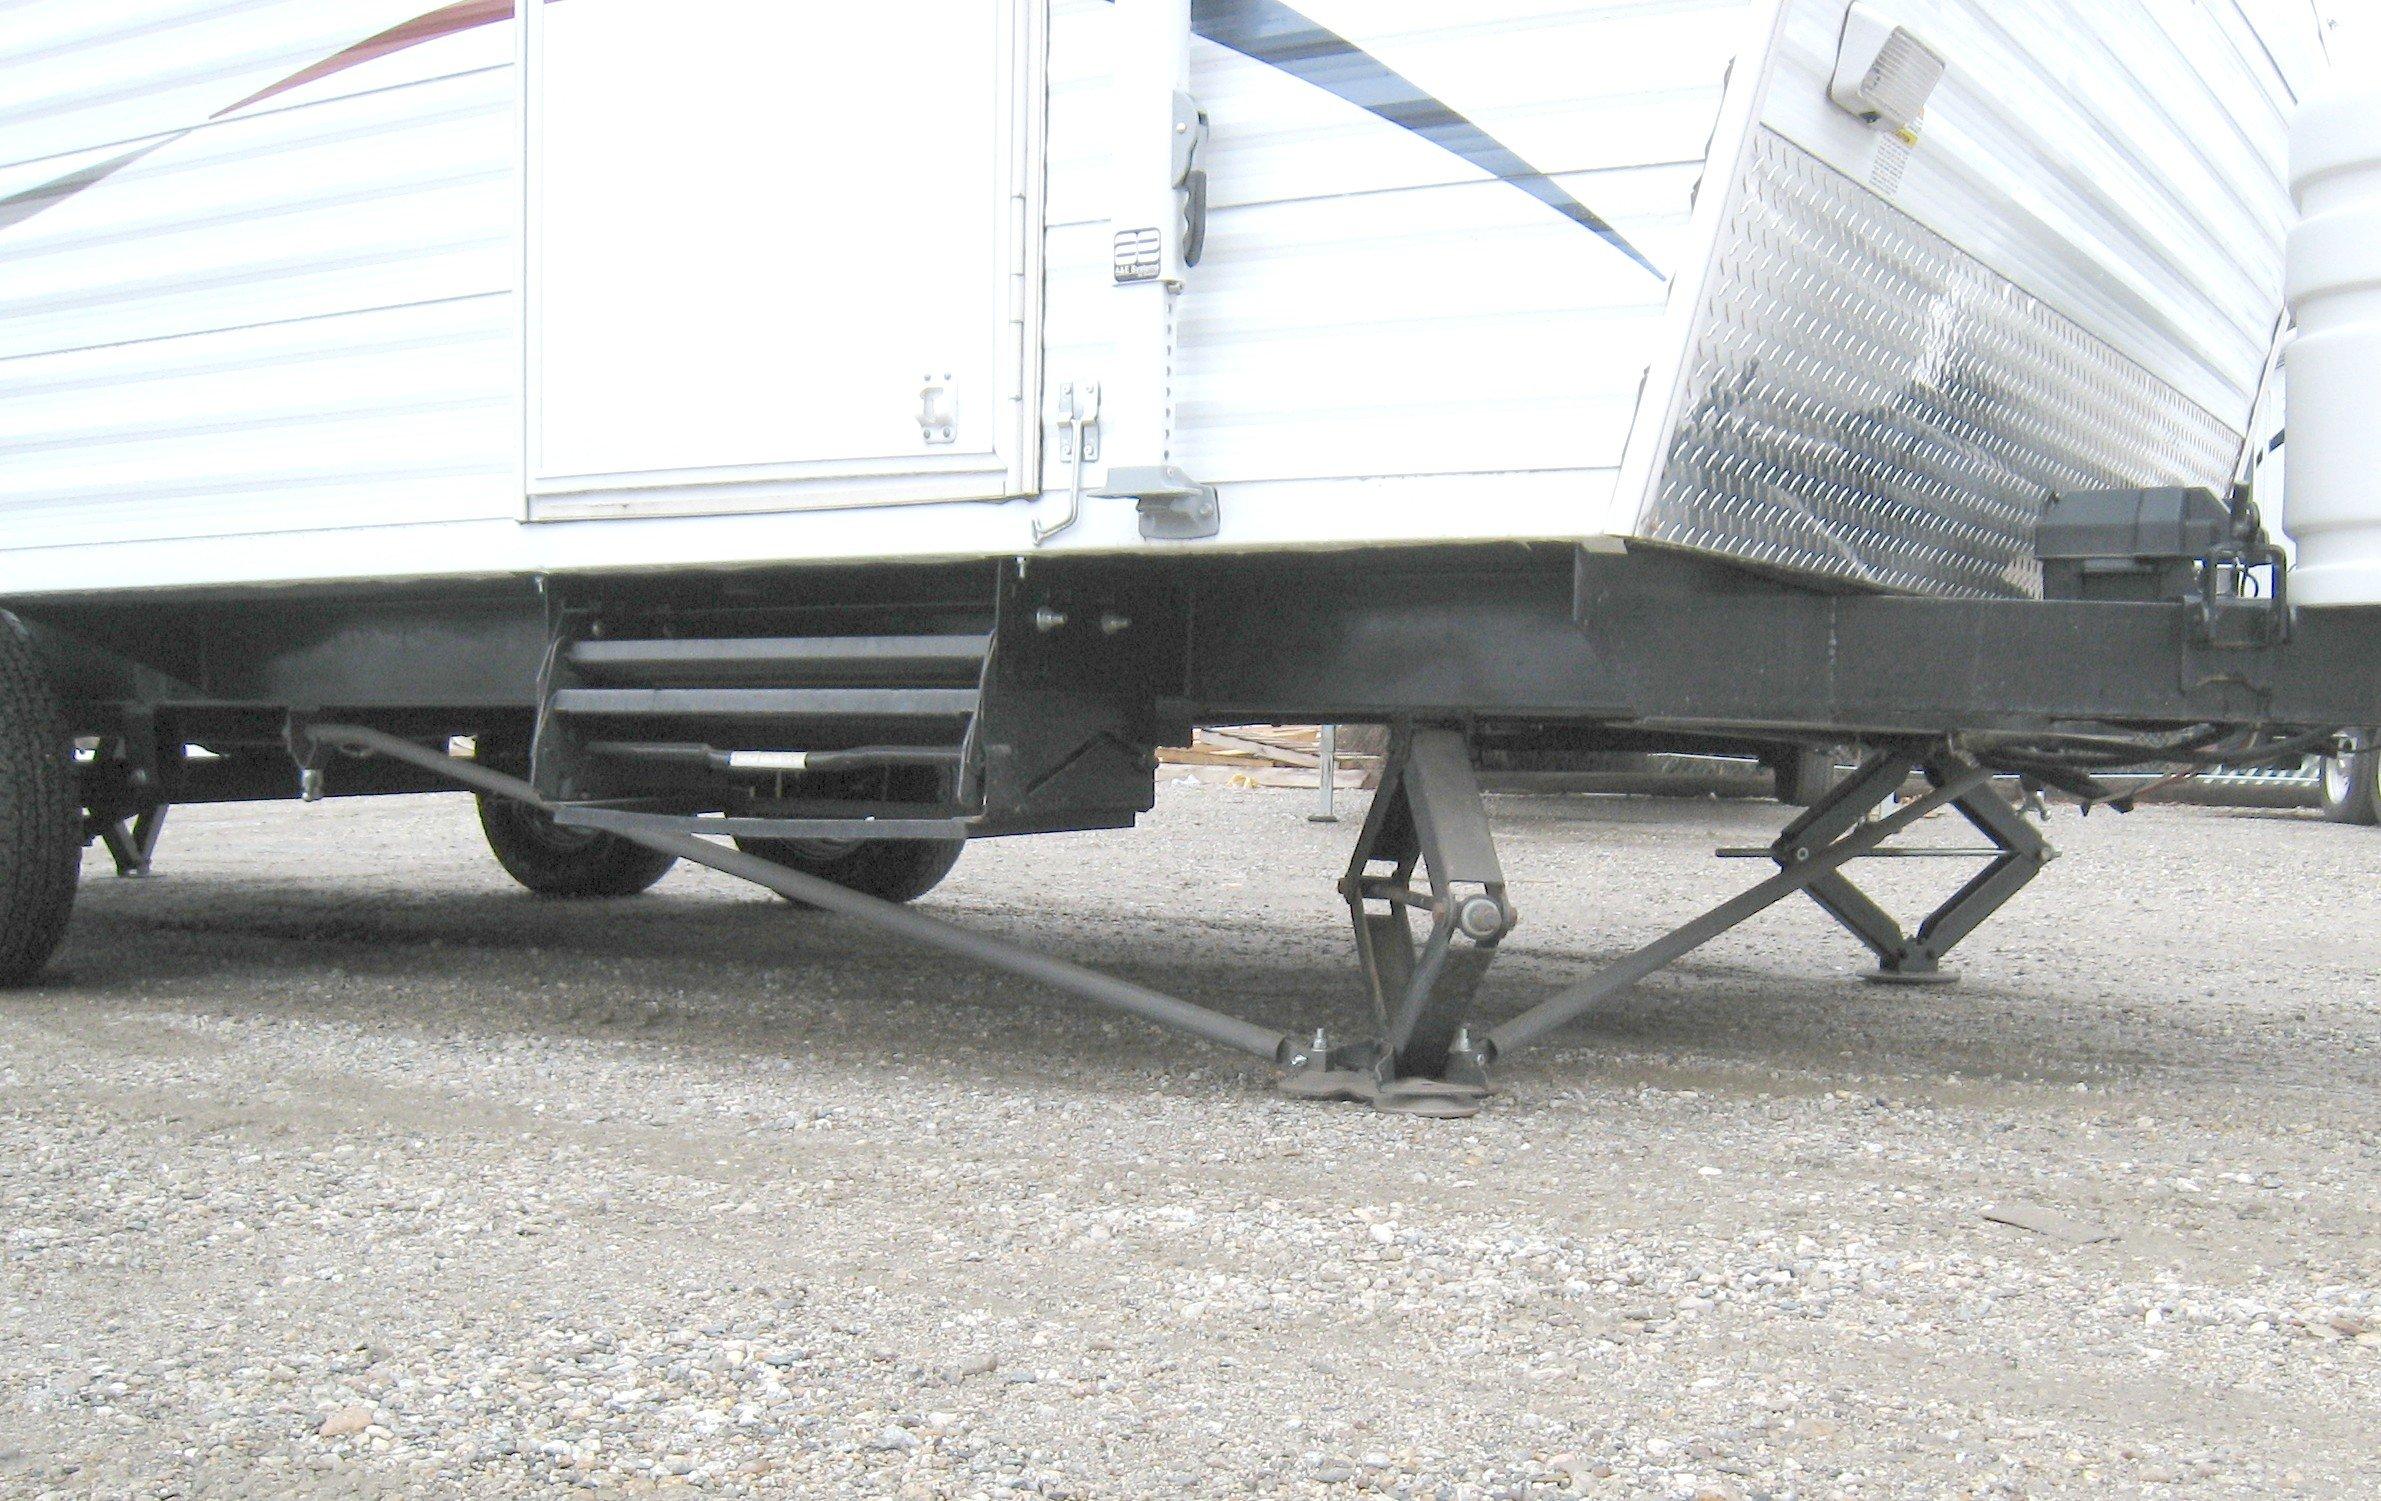 RV Trailer Stabilizer System for 5th Wheels and Travel Trailers - 4 Foot Plates